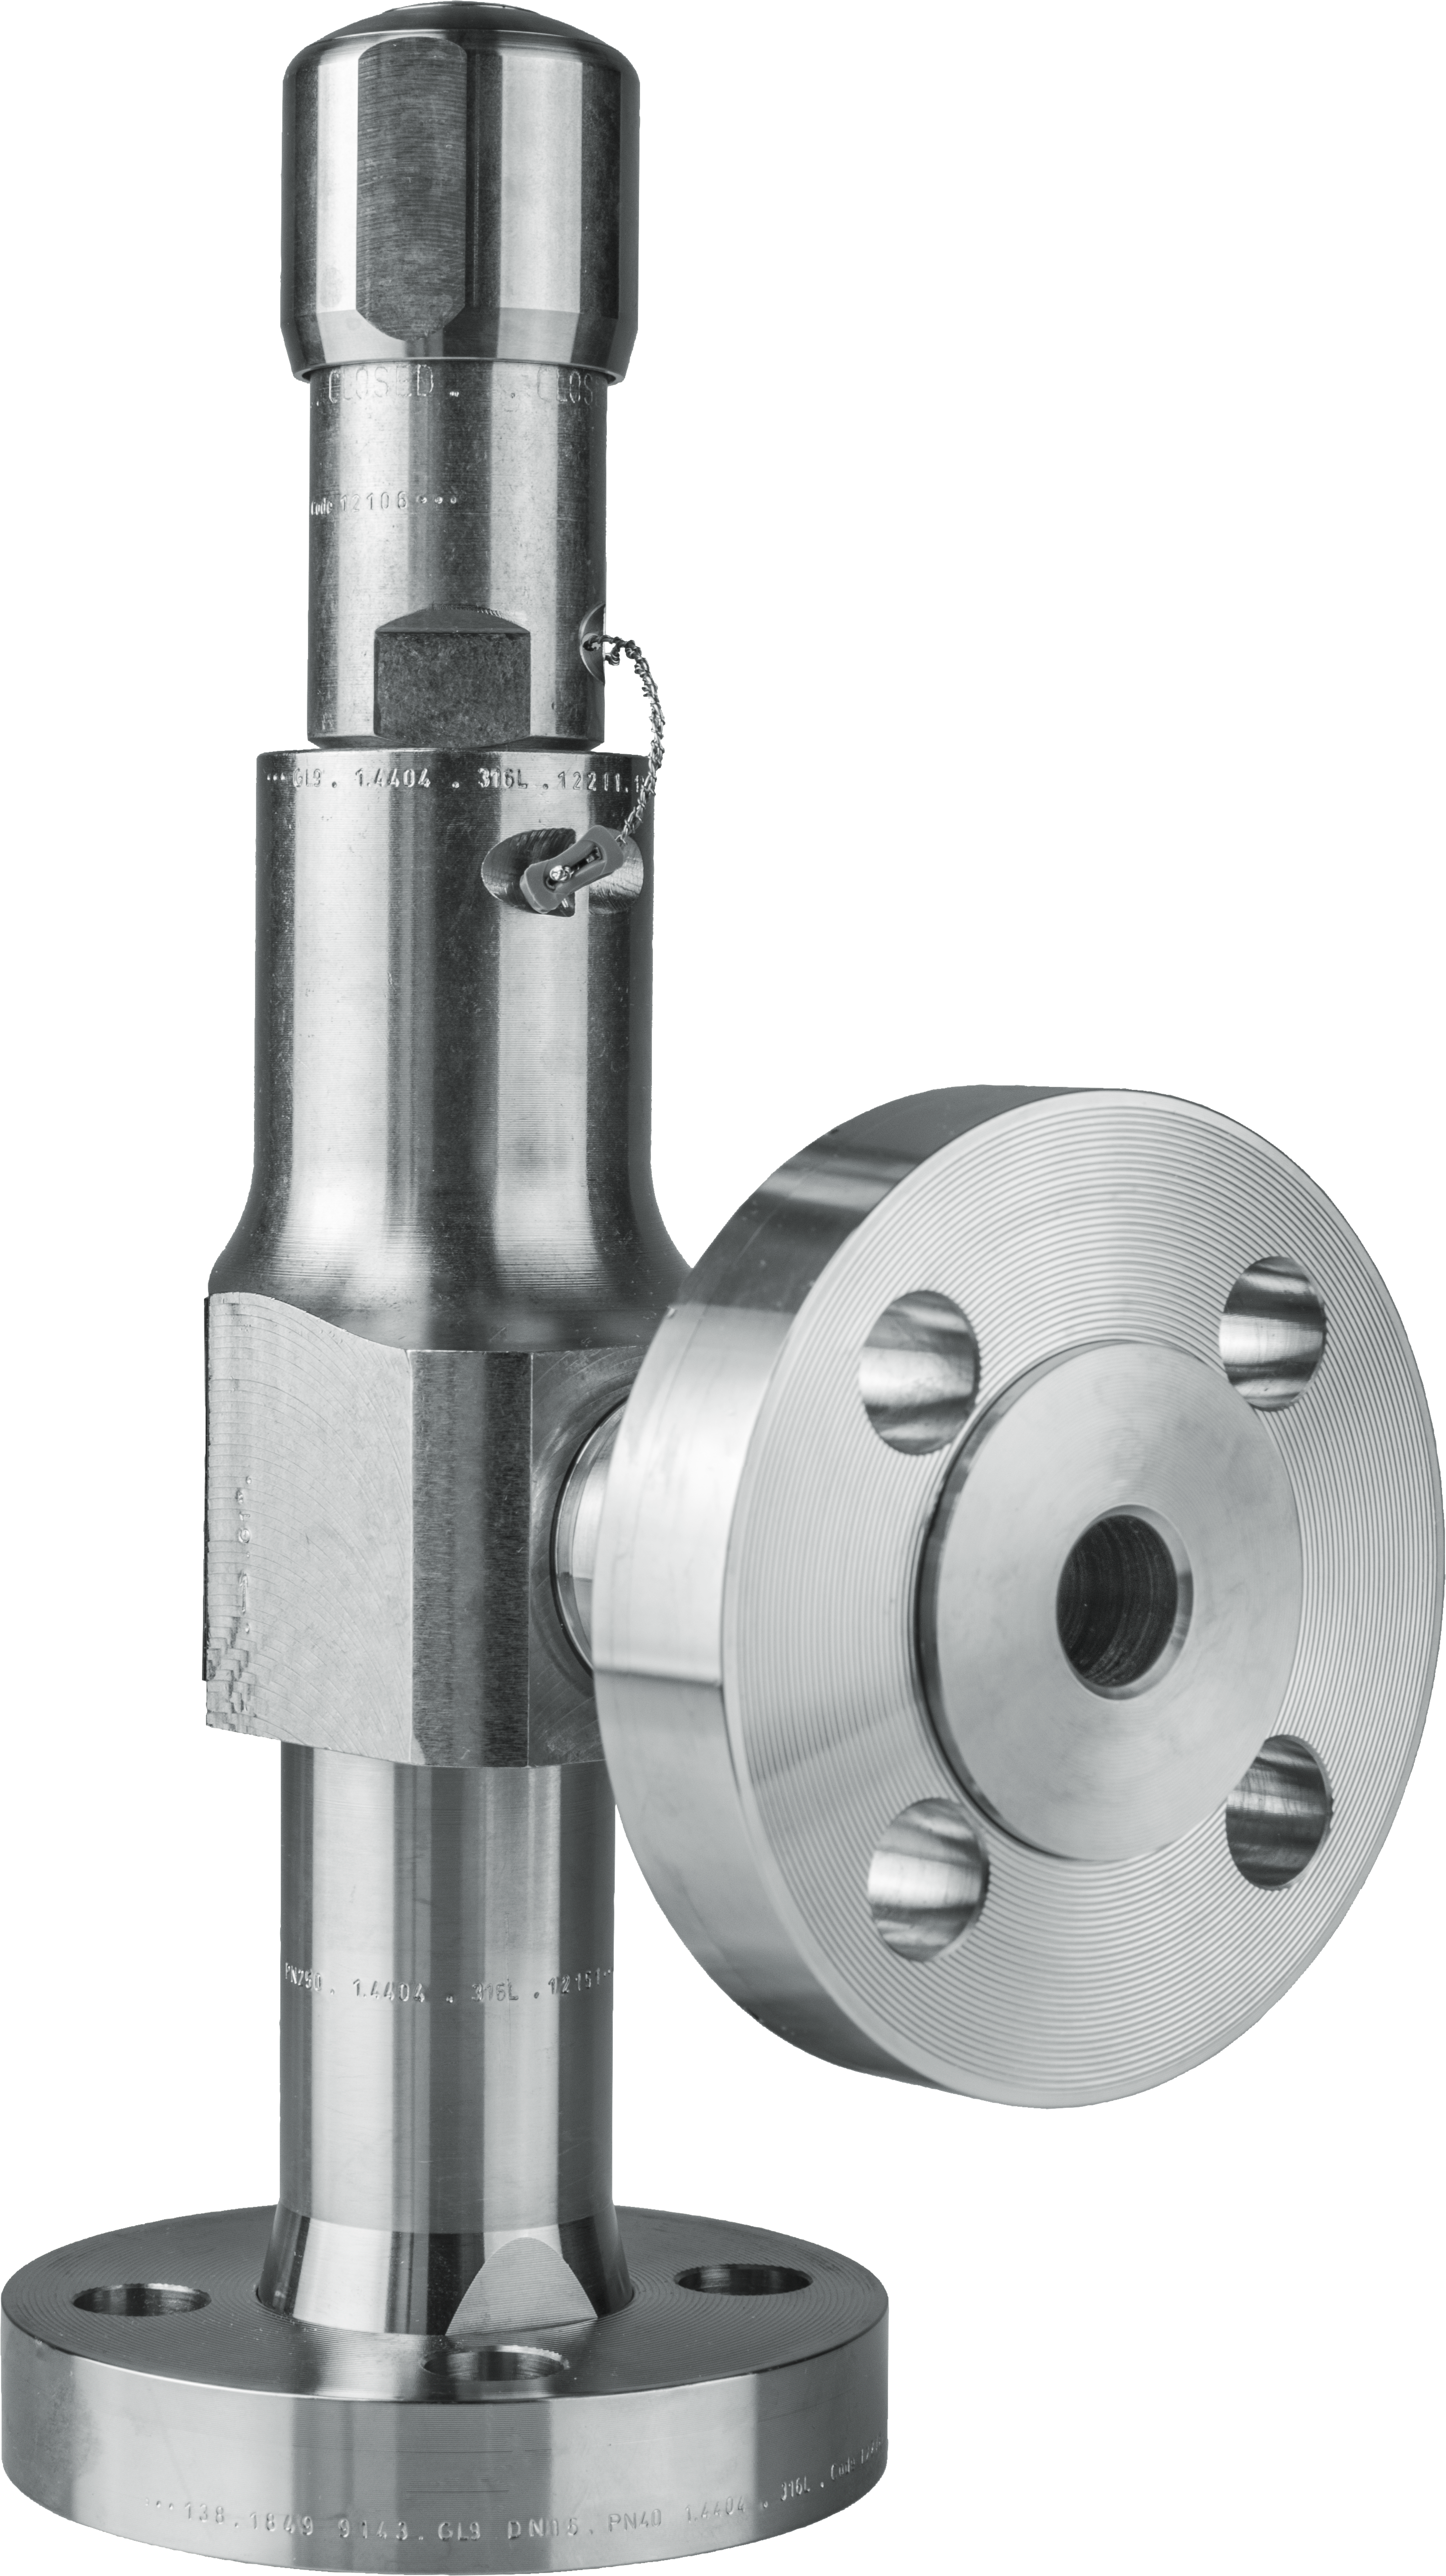 LESER Compact Performance Safety Valve Type 438